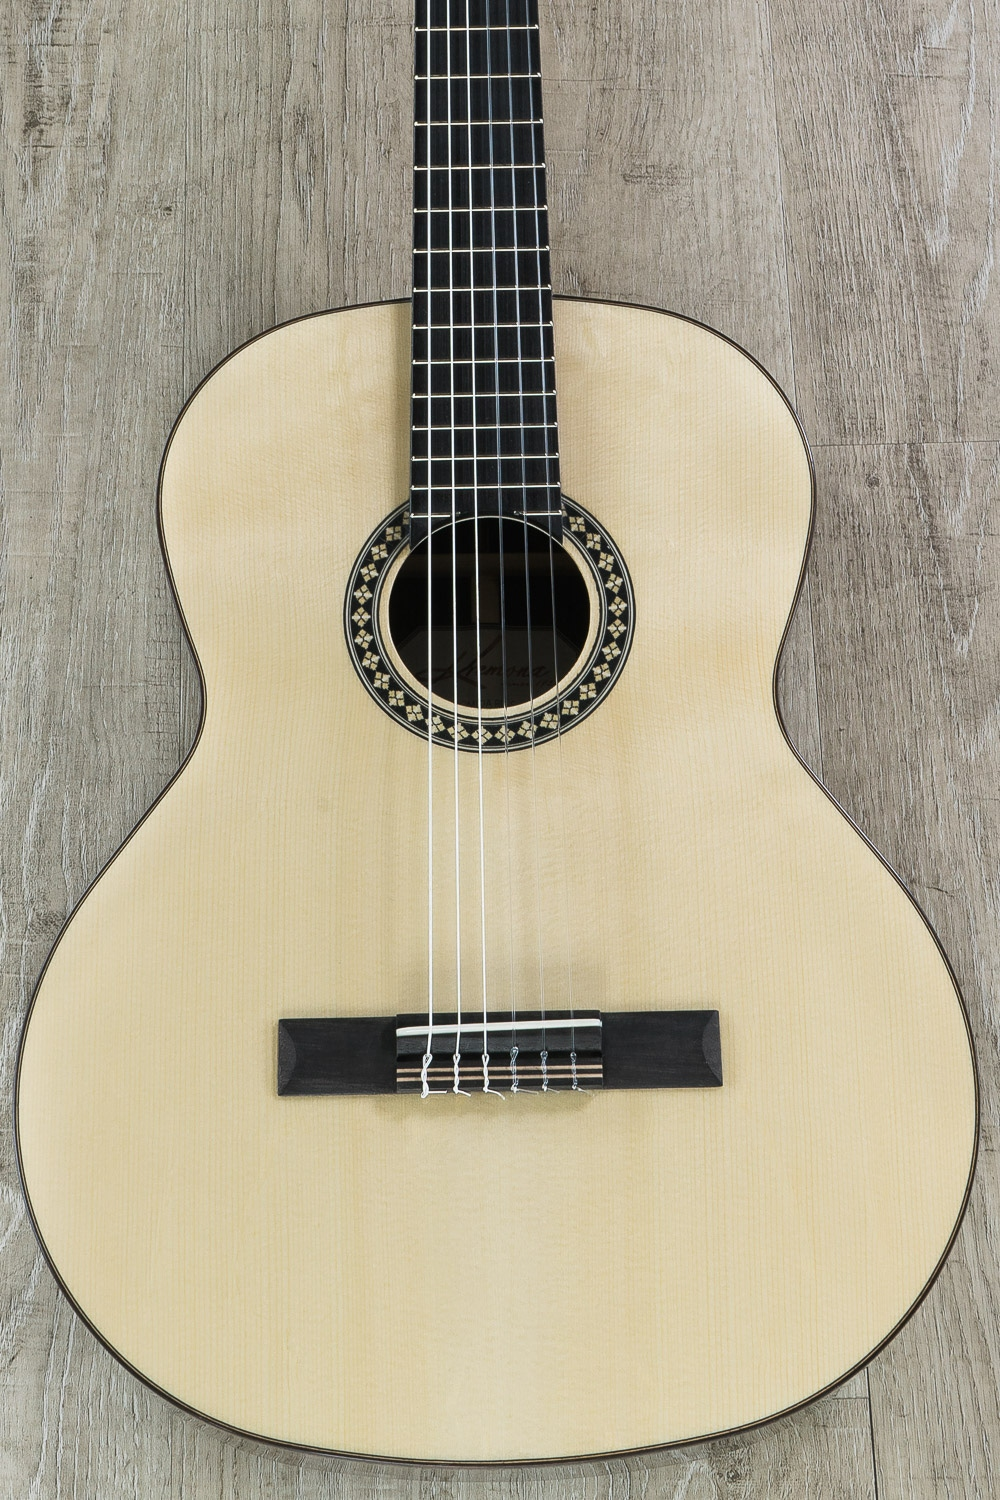 pitbull audio kremona romida rd s acoustic classical guitar nylon string european spruce top. Black Bedroom Furniture Sets. Home Design Ideas